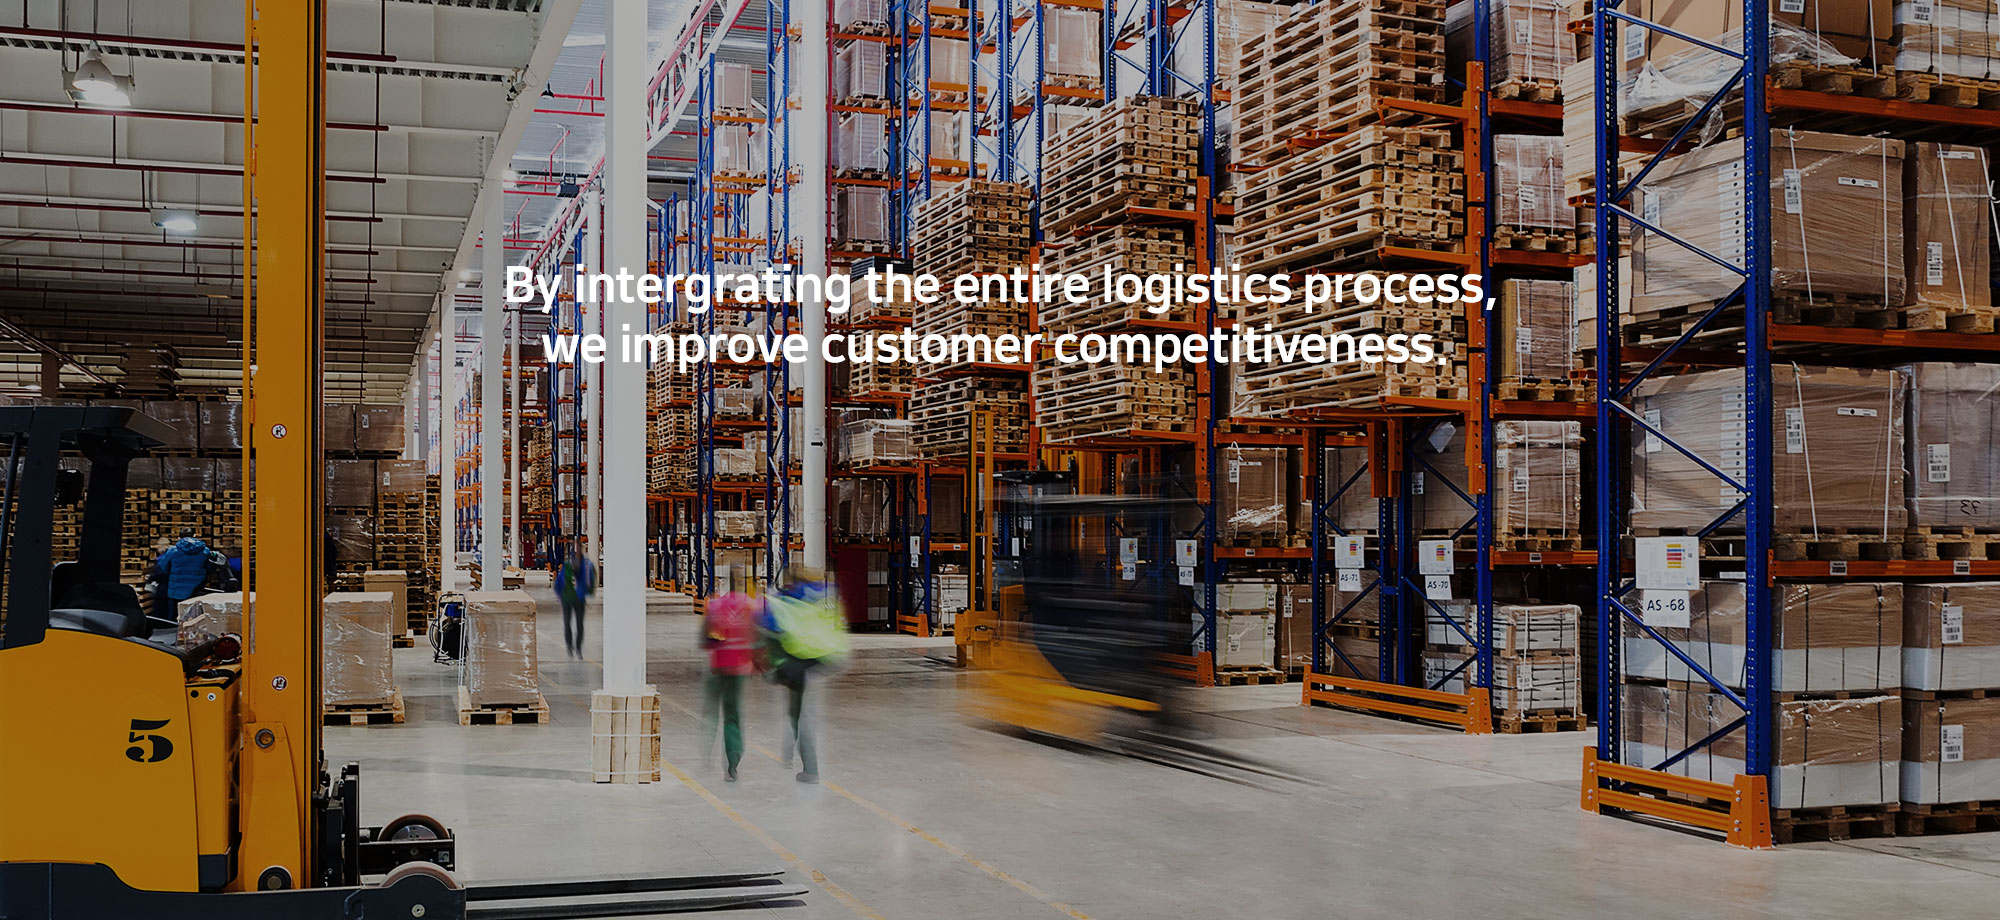 By intergrating the entire logistics process, we improve customer competitiveness.